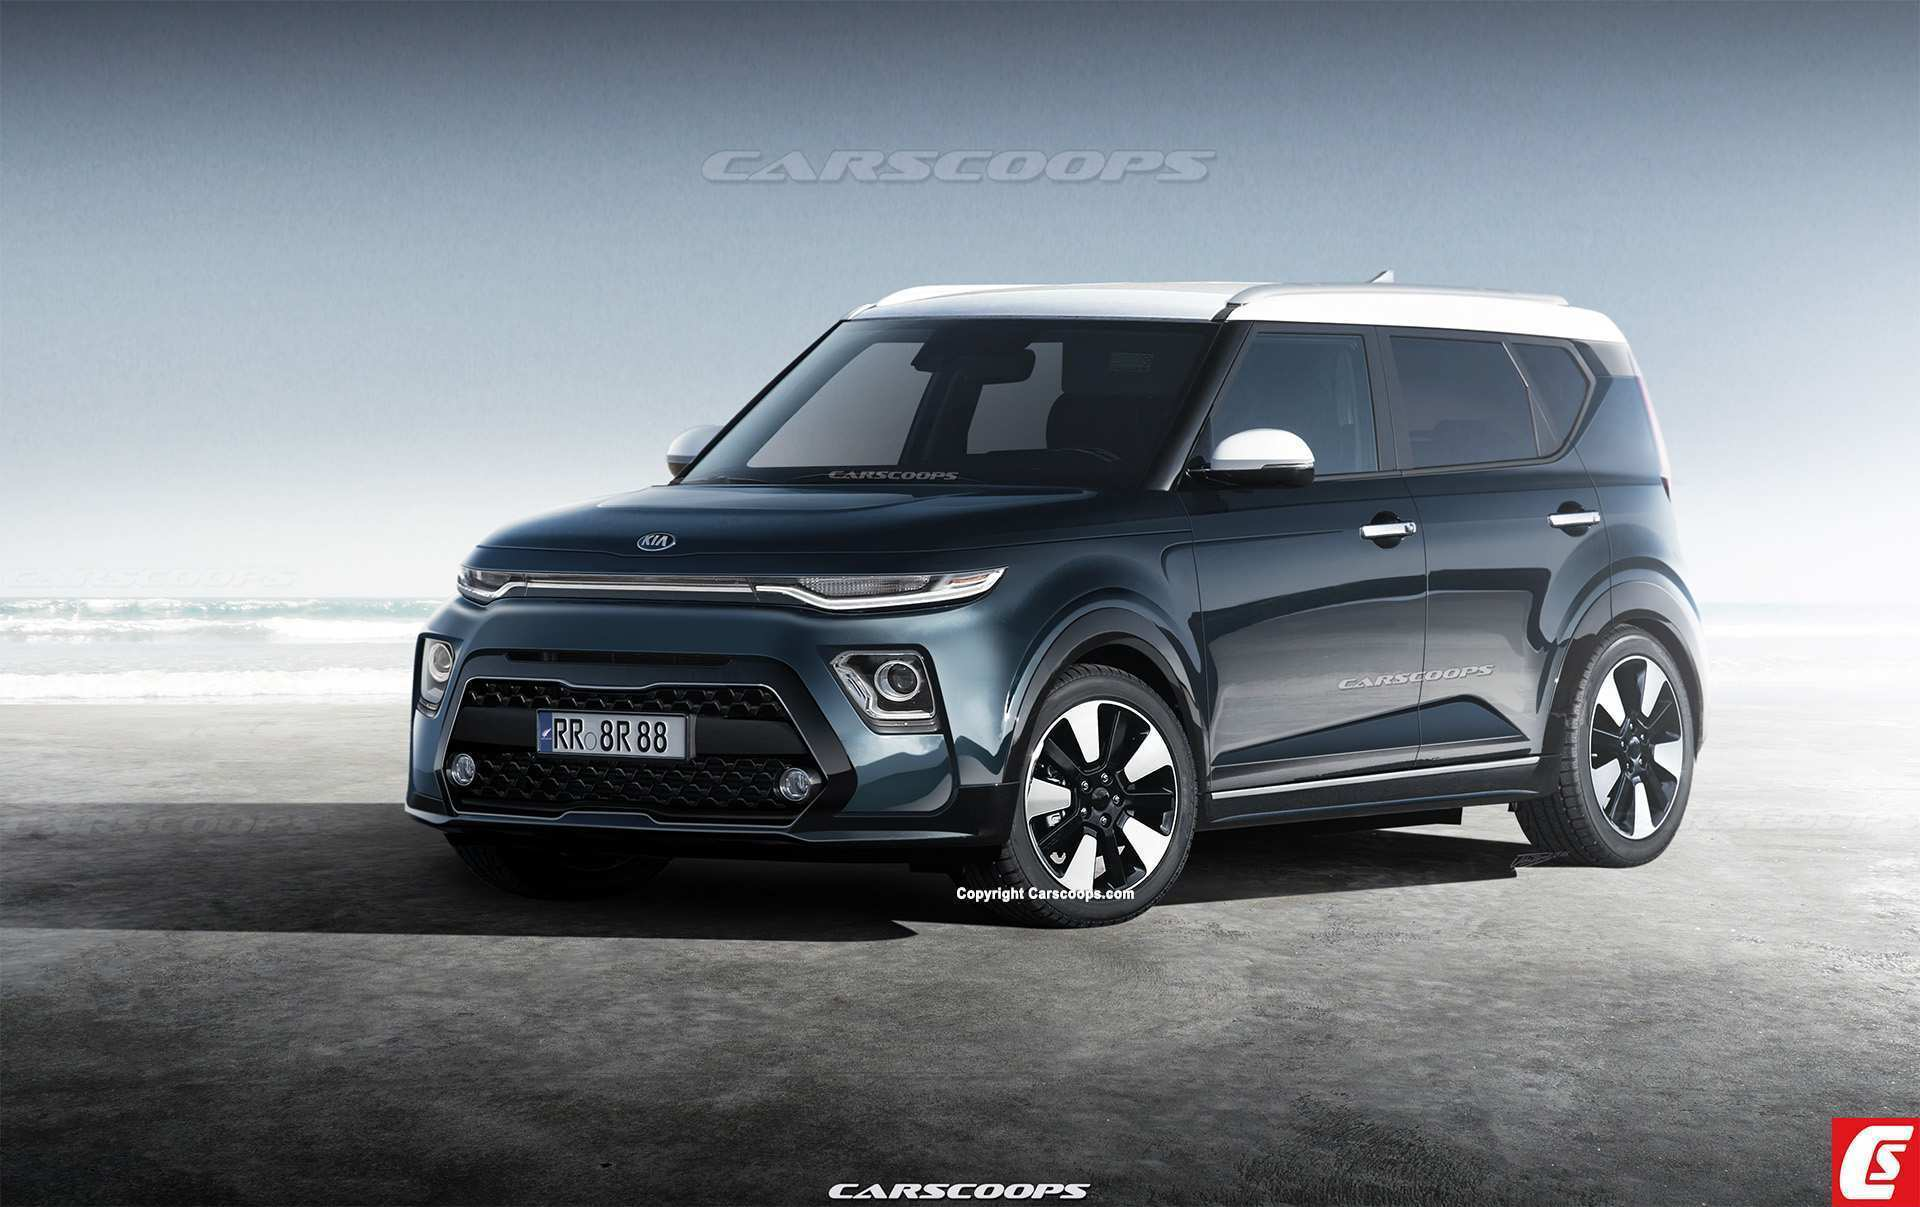 78 The Best 2020 Kia Soul Review And Release Date